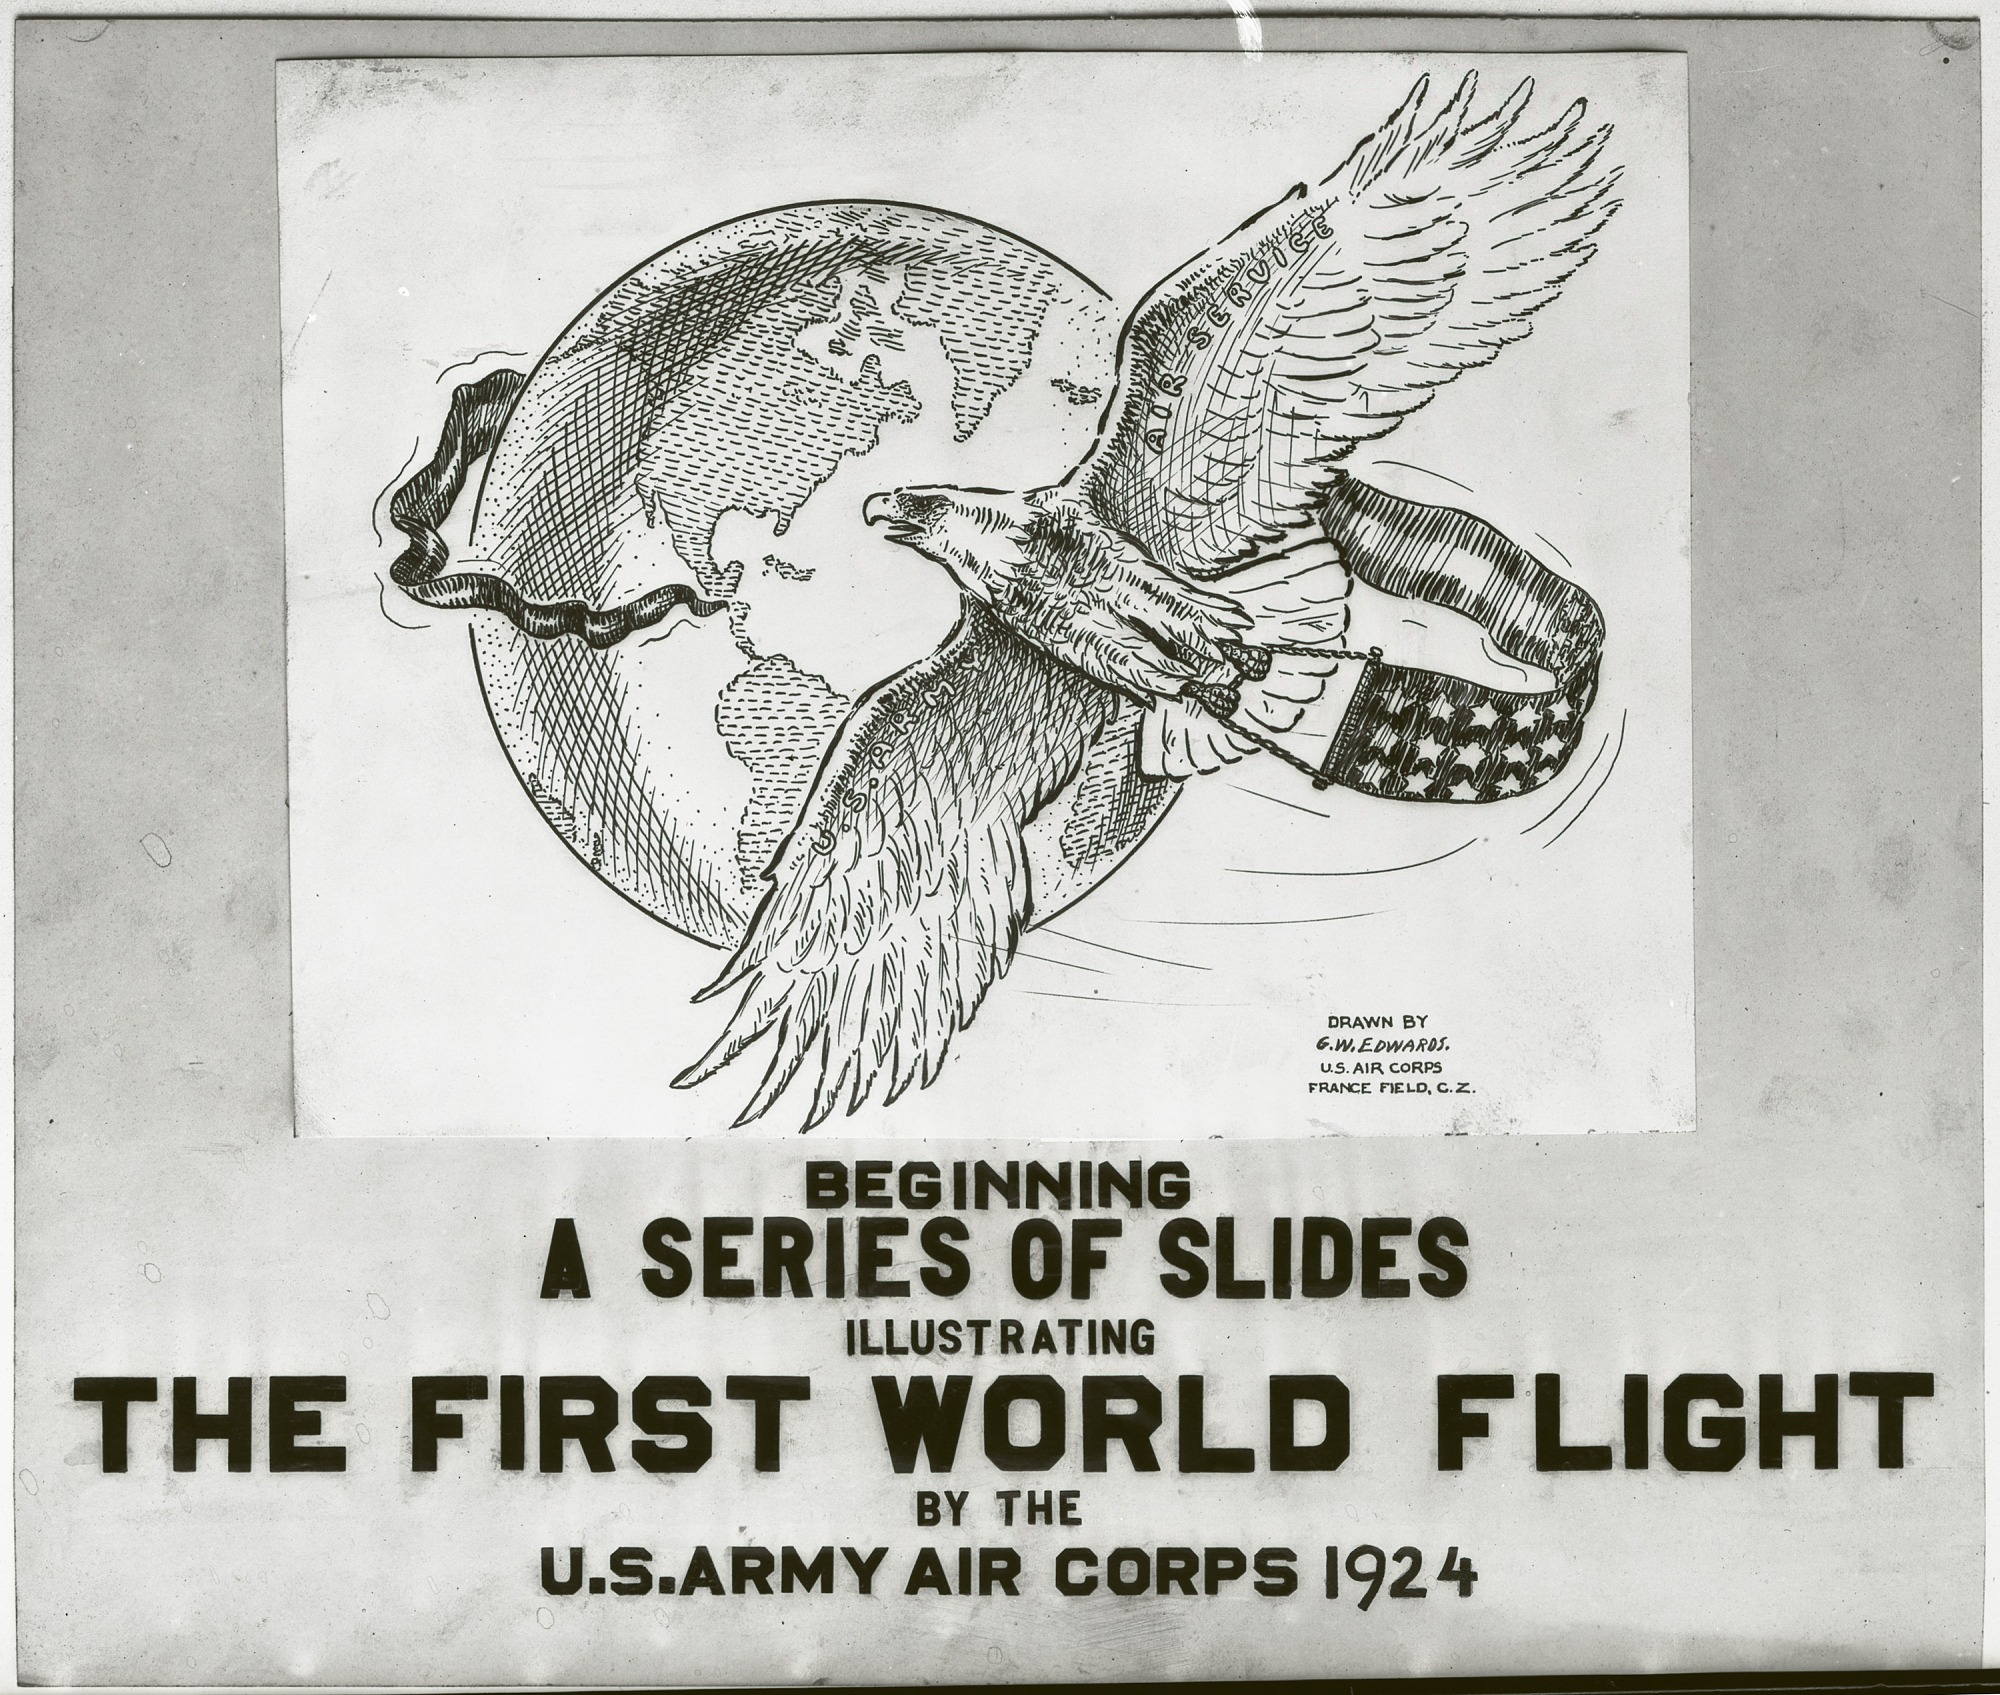 United States Army Around the World Flight (1924) Collection